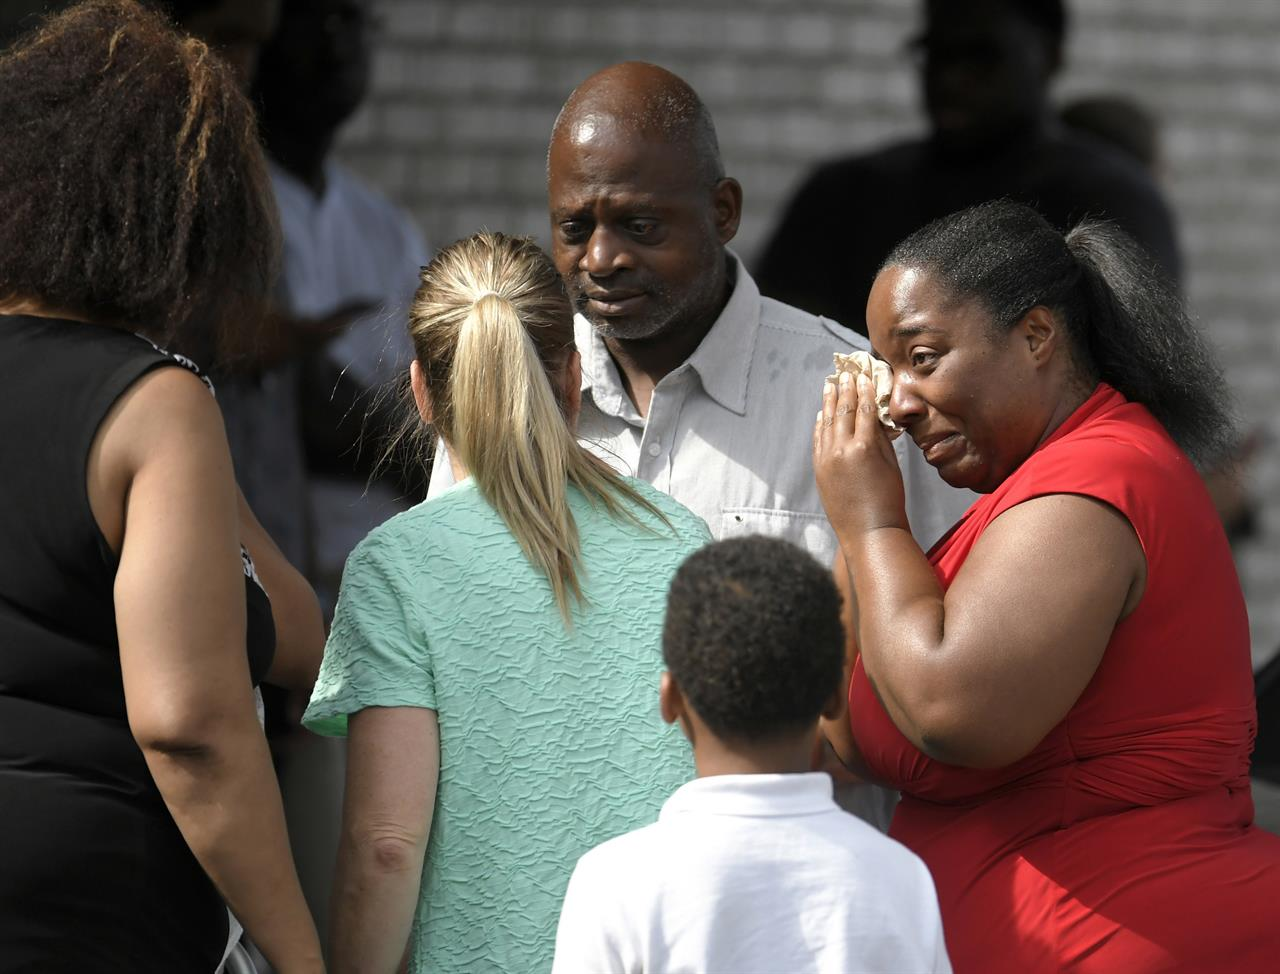 Christ Church Shooting Photo: Police: Tennessee Church Shooting Suspect Sent Suicidal